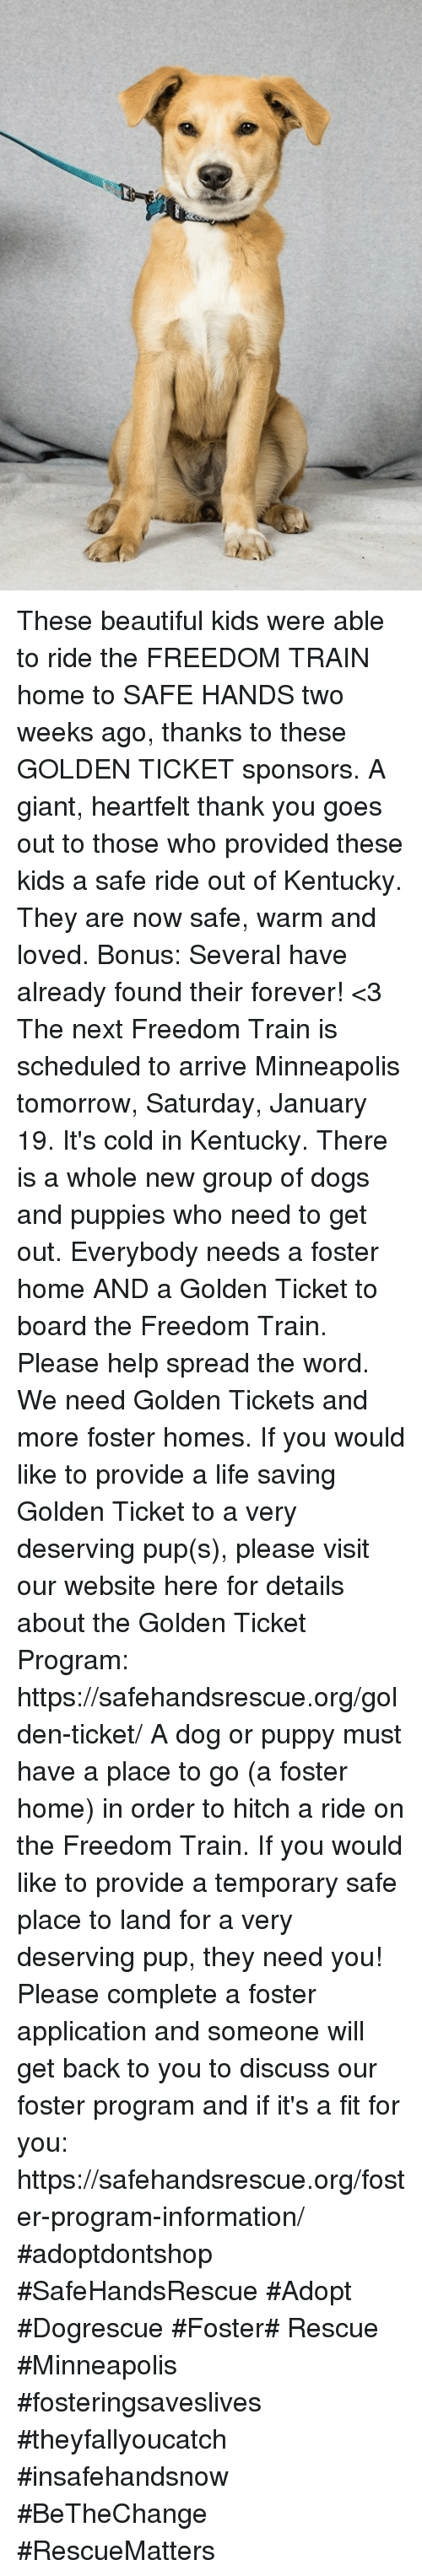 Beautiful, Dogs, and Golden Ticket: These beautiful kids were able to ride the FREEDOM TRAIN home to SAFE HANDS two weeks ago, thanks to these GOLDEN TICKET sponsors. A giant, heartfelt thank you goes out to those who provided these kids a safe ride out of  Kentucky. They are now safe, warm and loved. Bonus: Several have already found their forever! <3  The next Freedom Train is scheduled to arrive Minneapolis tomorrow, Saturday, January 19. It's cold in Kentucky. There is a whole new group of dogs and puppies who need to get out. Everybody needs a foster home AND a Golden Ticket to board the Freedom Train. Please help spread the word. We need Golden Tickets and more foster homes.  If you would like to provide a life saving Golden Ticket to a very deserving pup(s), please visit our website here for details about the Golden Ticket Program: https://safehandsrescue.org/golden-ticket/  A dog or puppy must have a place to go (a foster home) in order to hitch a ride on the Freedom Train. If you would like to provide a temporary safe place to land for a very deserving pup, they need you! Please complete a foster application and someone will get back to you to discuss our foster program and if it's a fit for you: https://safehandsrescue.org/foster-program-information/  #adoptdontshop #SafeHandsRescue #Adopt #Dogrescue #Foster# Rescue #Minneapolis #fosteringsaveslives #theyfallyoucatch #insafehandsnow #BeTheChange #RescueMatters